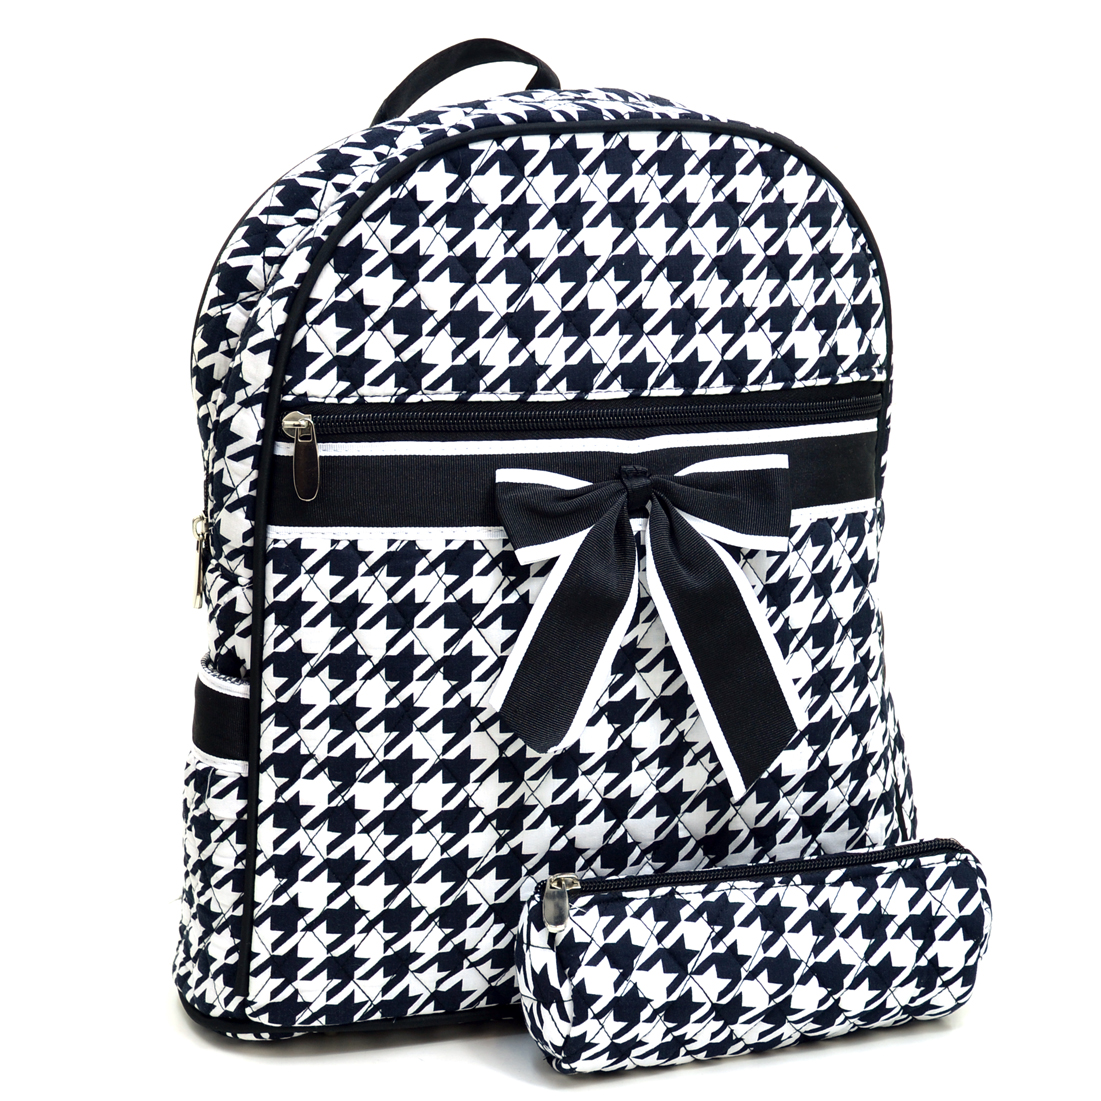 Houndstooth Backpack w/ Convertible Shoulder Straps - Black